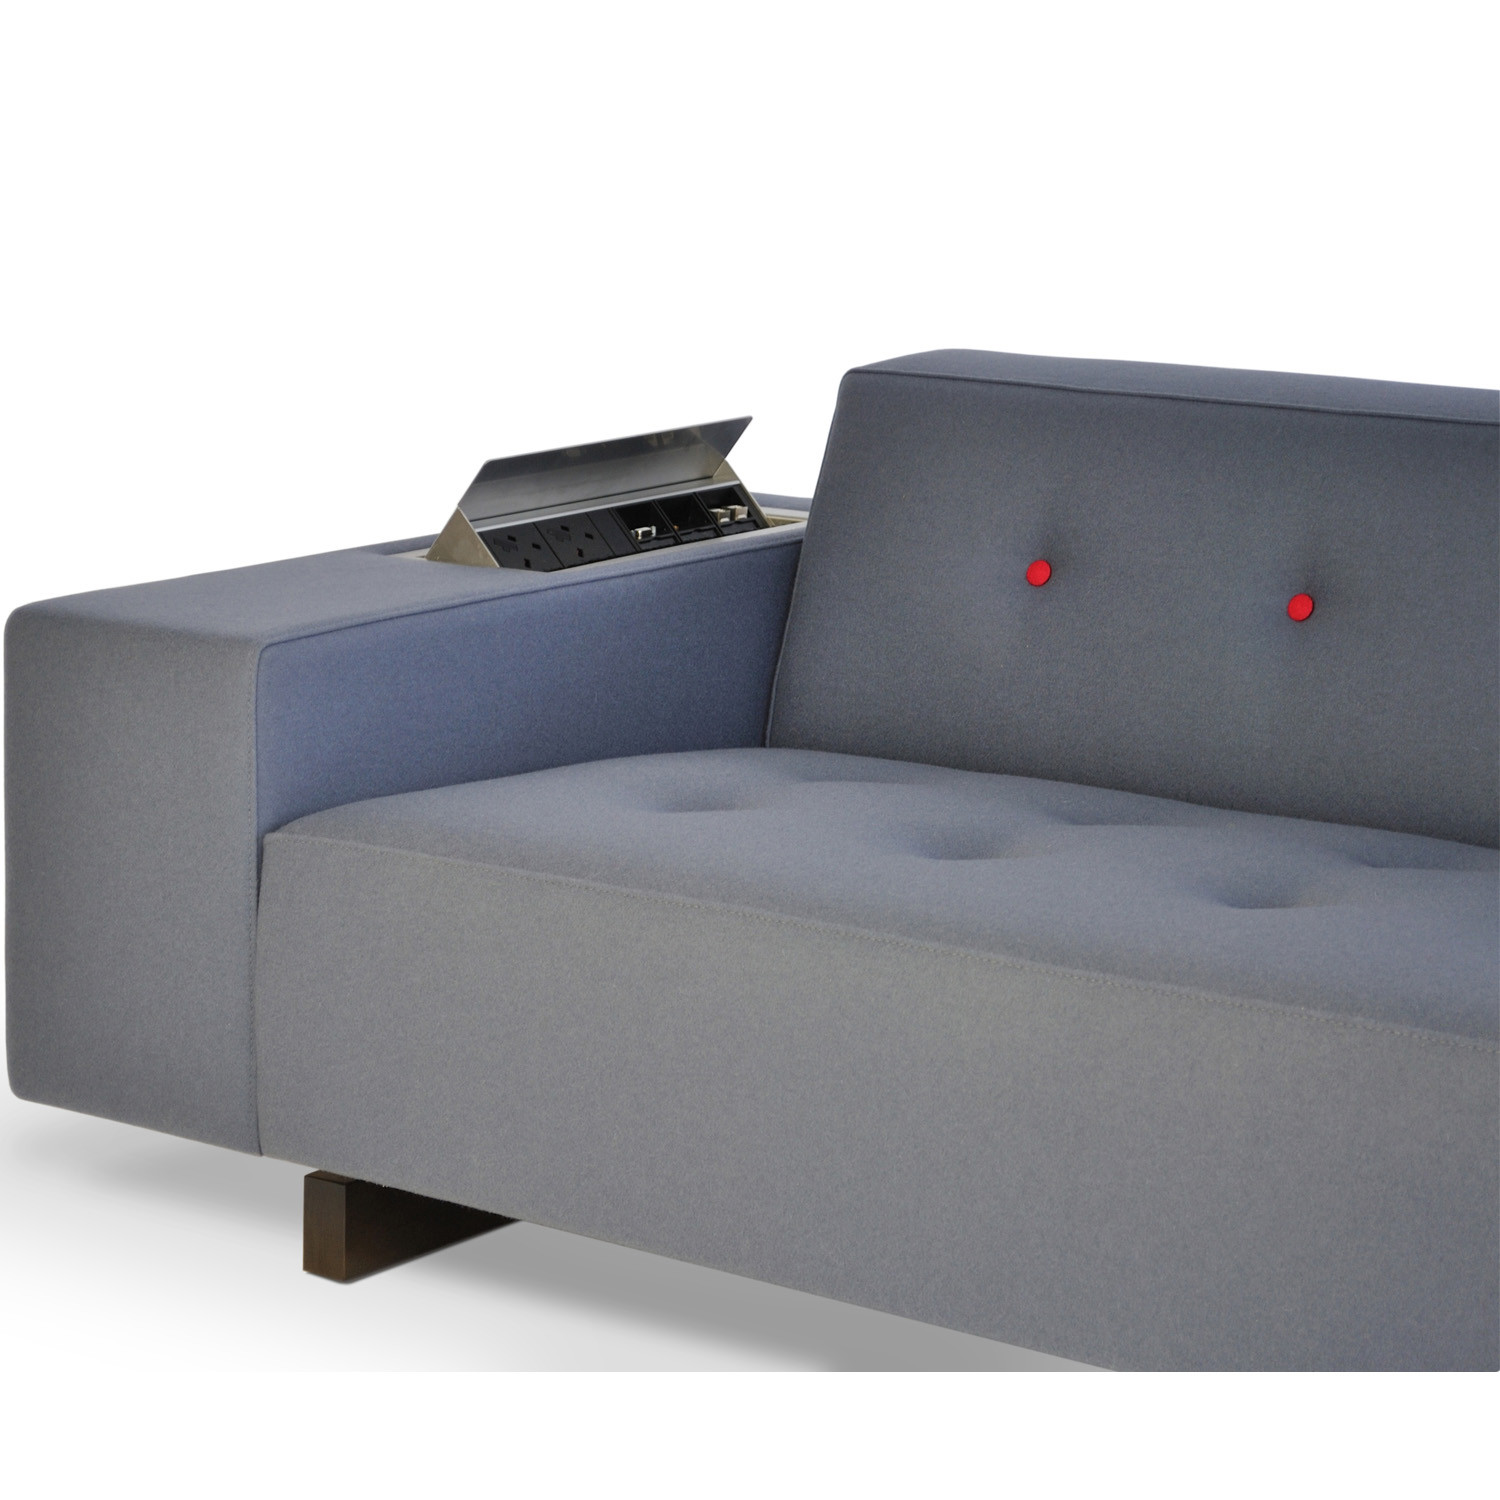 HM46 Seating - armrest with power data detail